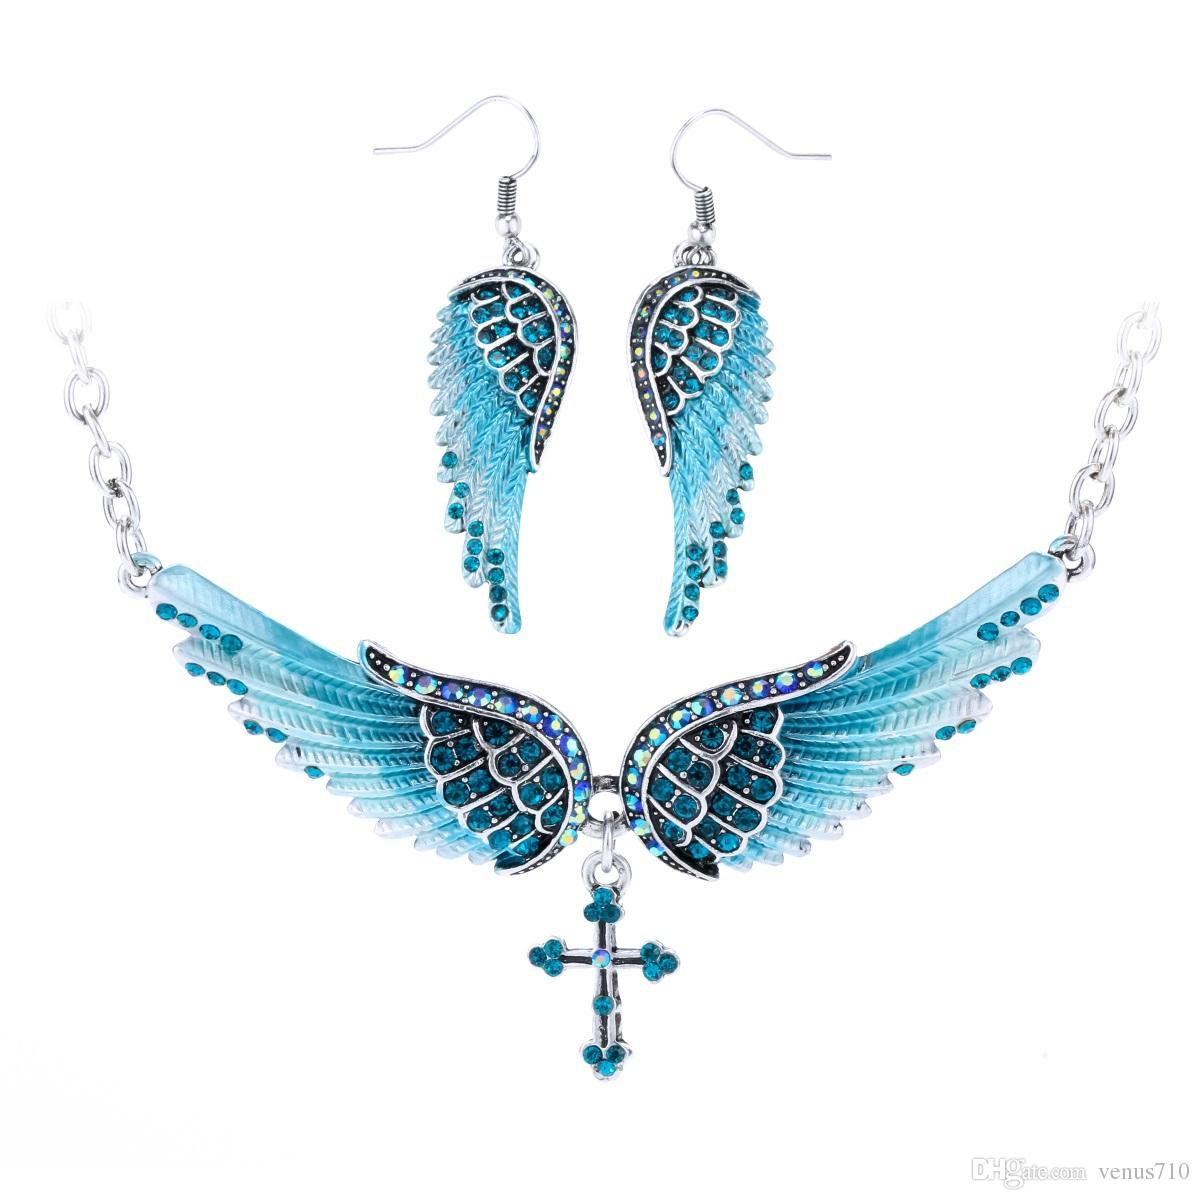 2019 Angel Wing Cross Necklace Earrings Sets Women Biker Jewelry Birthday Gifts For Her Wife Mom Girlfriend Dropshipping NENC01 From Venus710